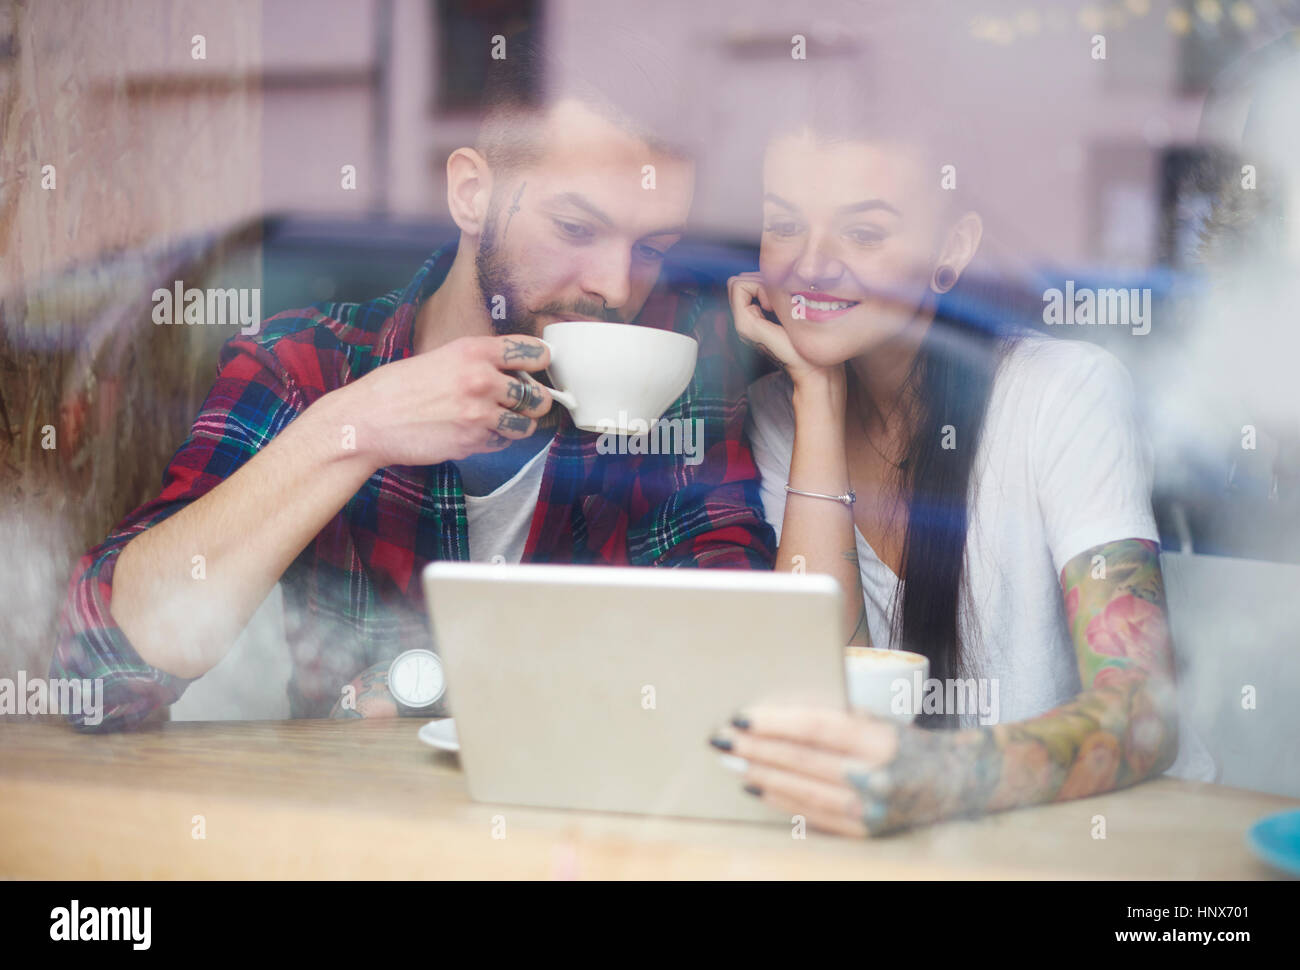 View through window of couple in coffee shop using digital tablet - Stock Image